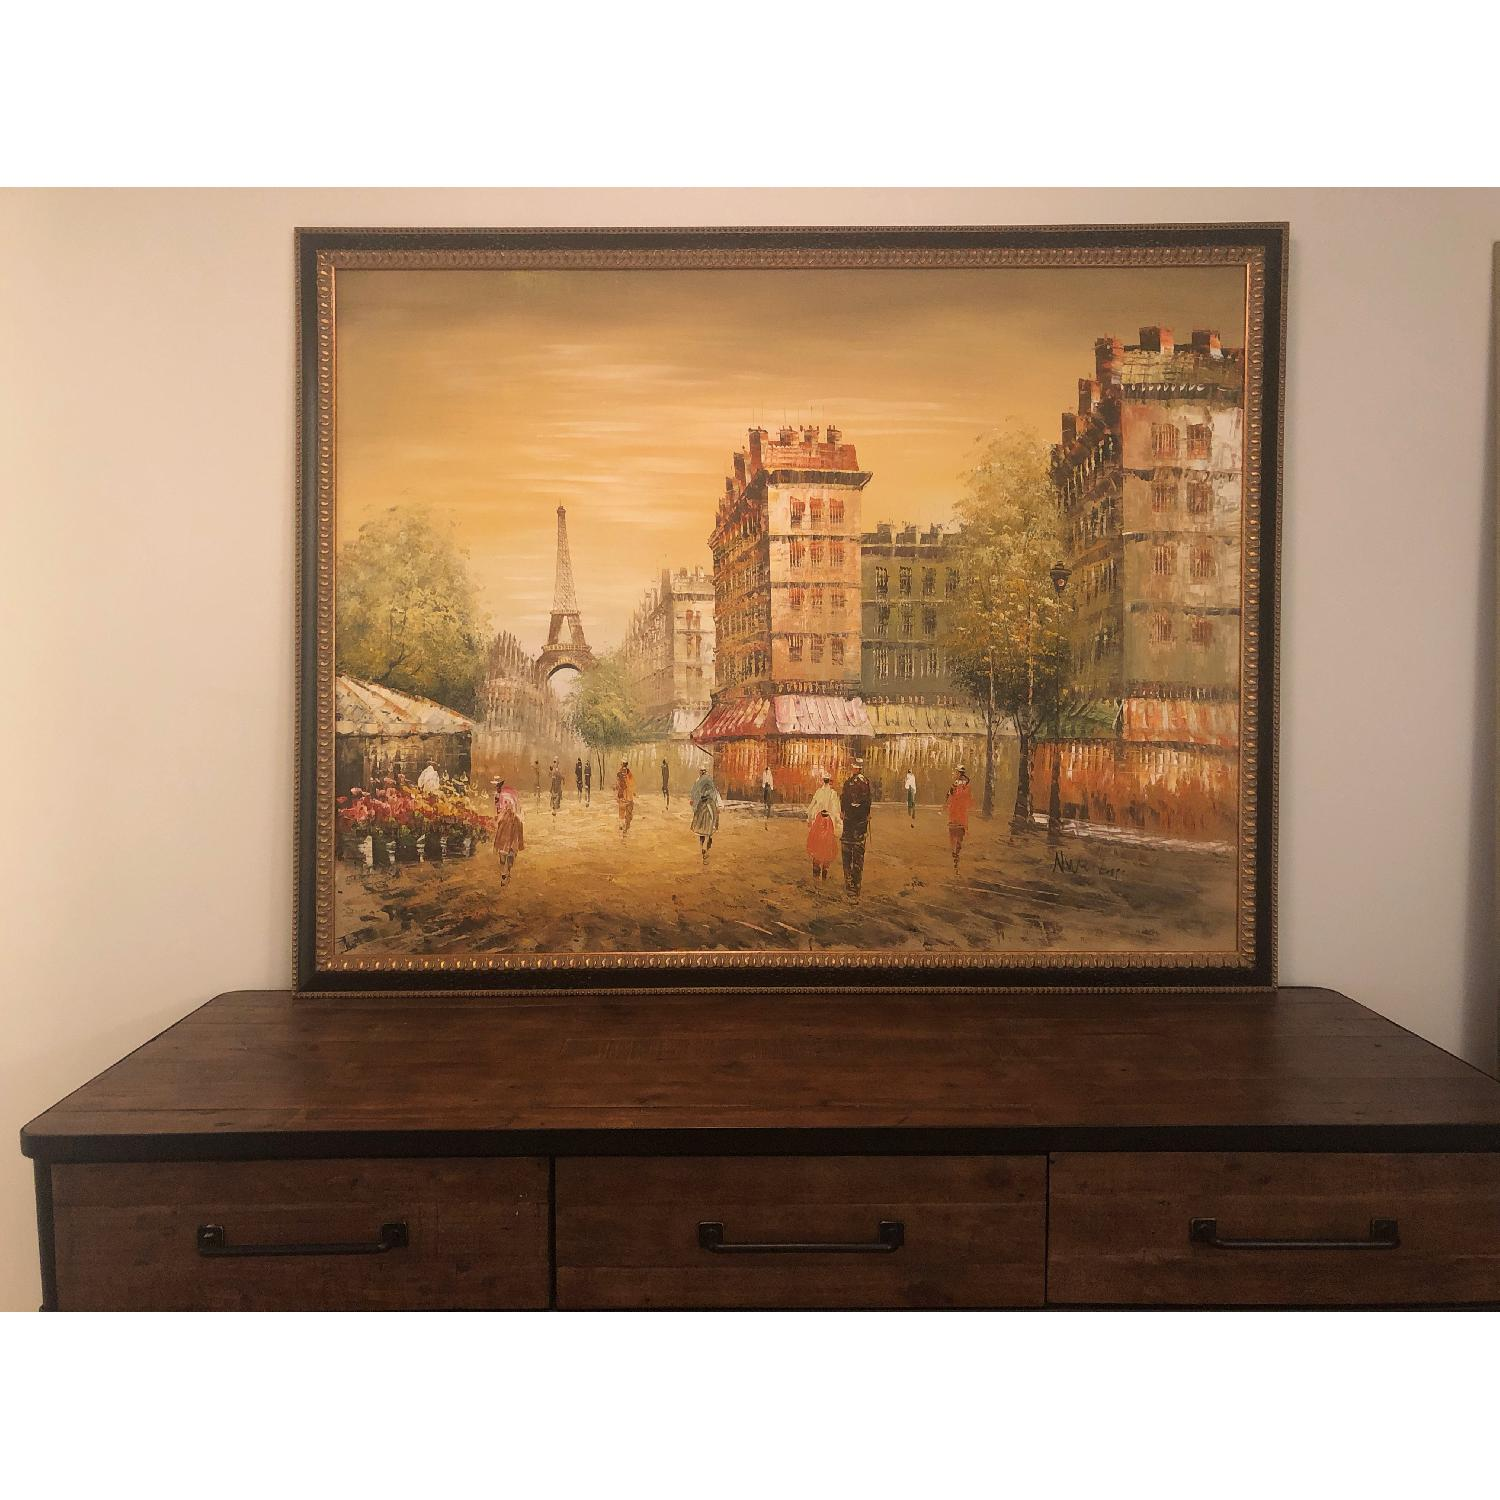 Framed Paris Painting - image-2